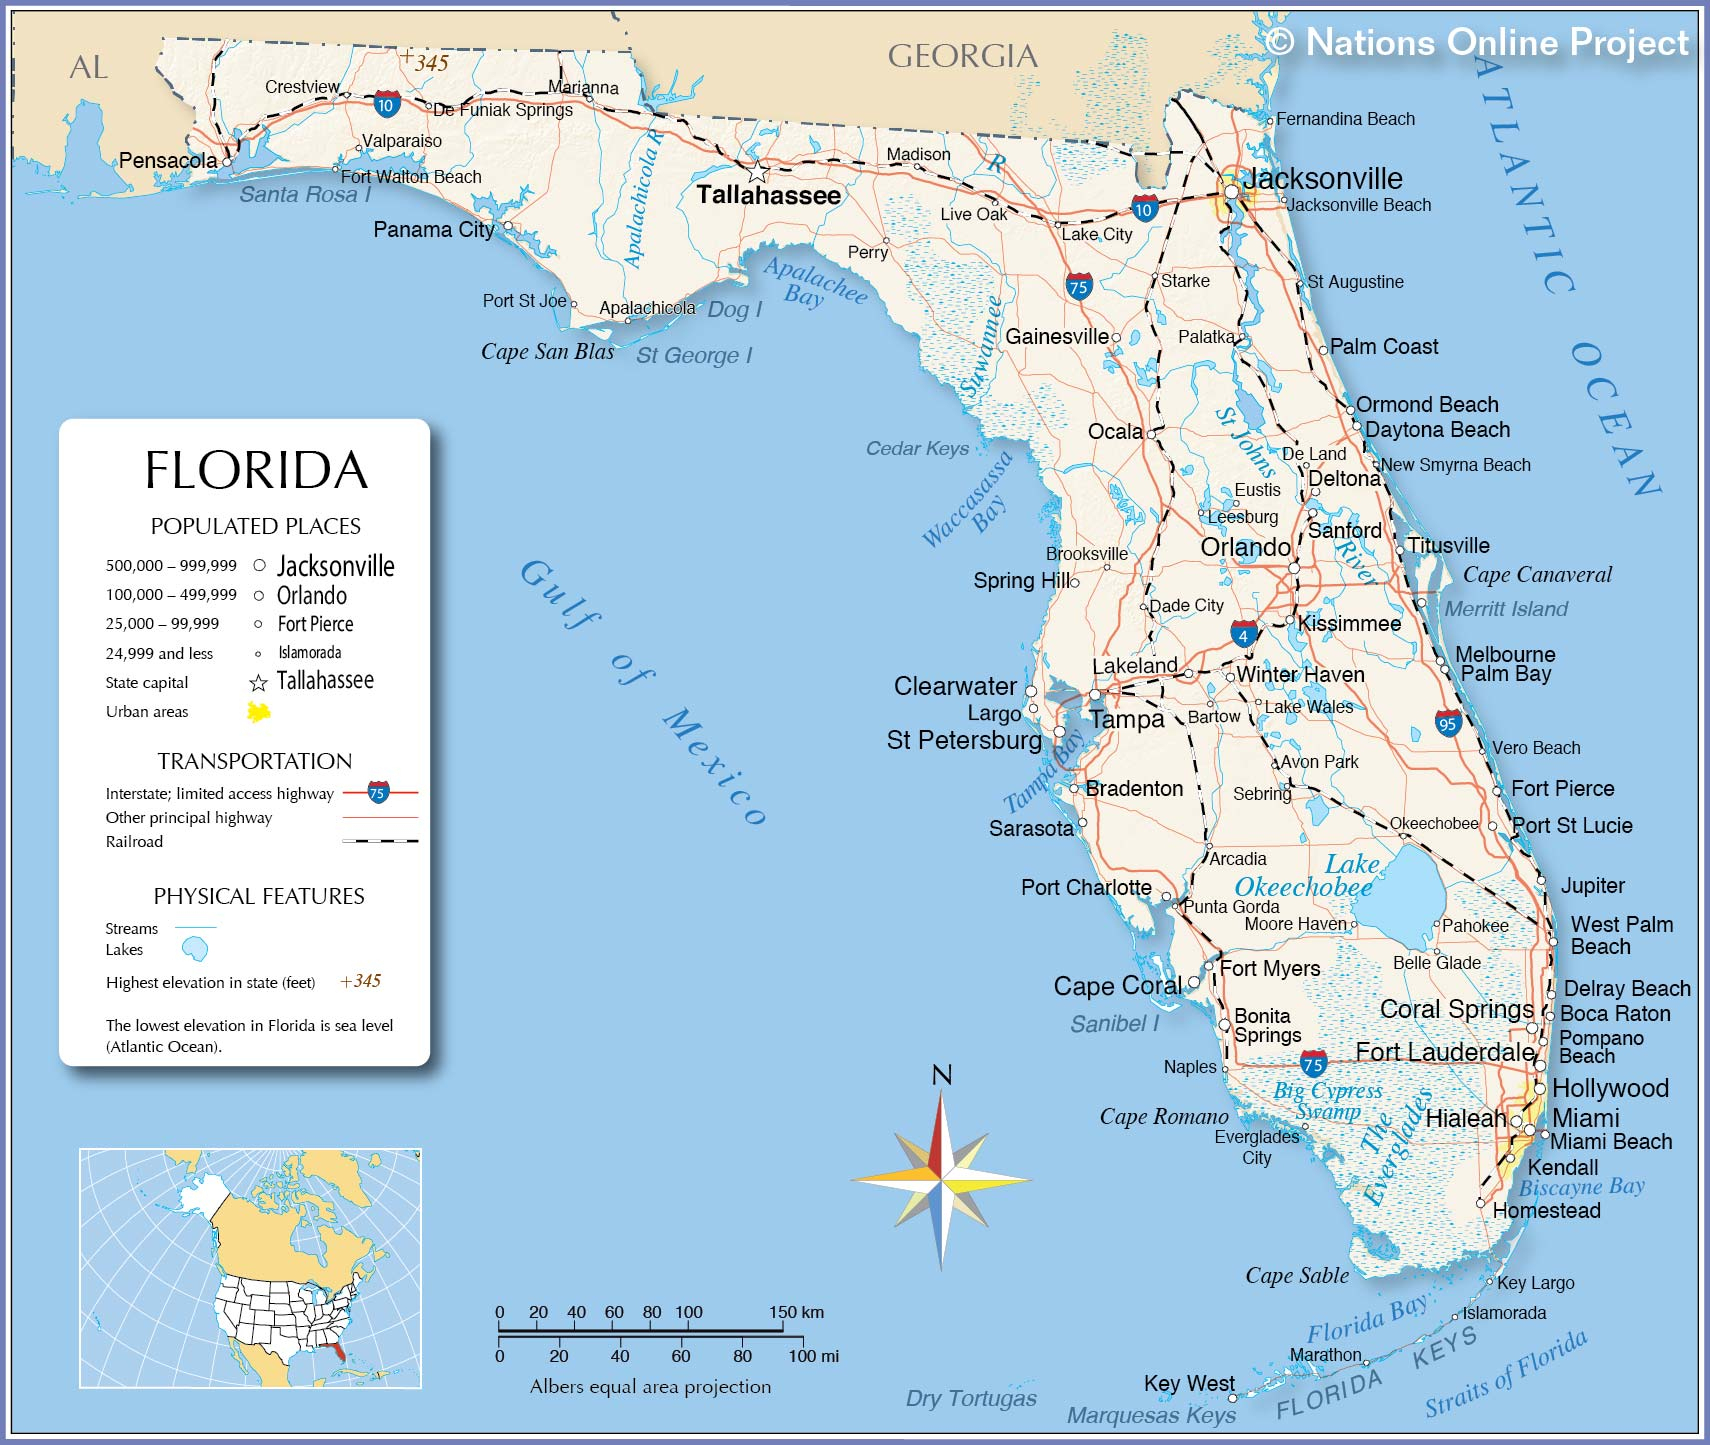 Reference Maps Of Florida, Usa - Nations Online Project - Natural Springs Florida Map